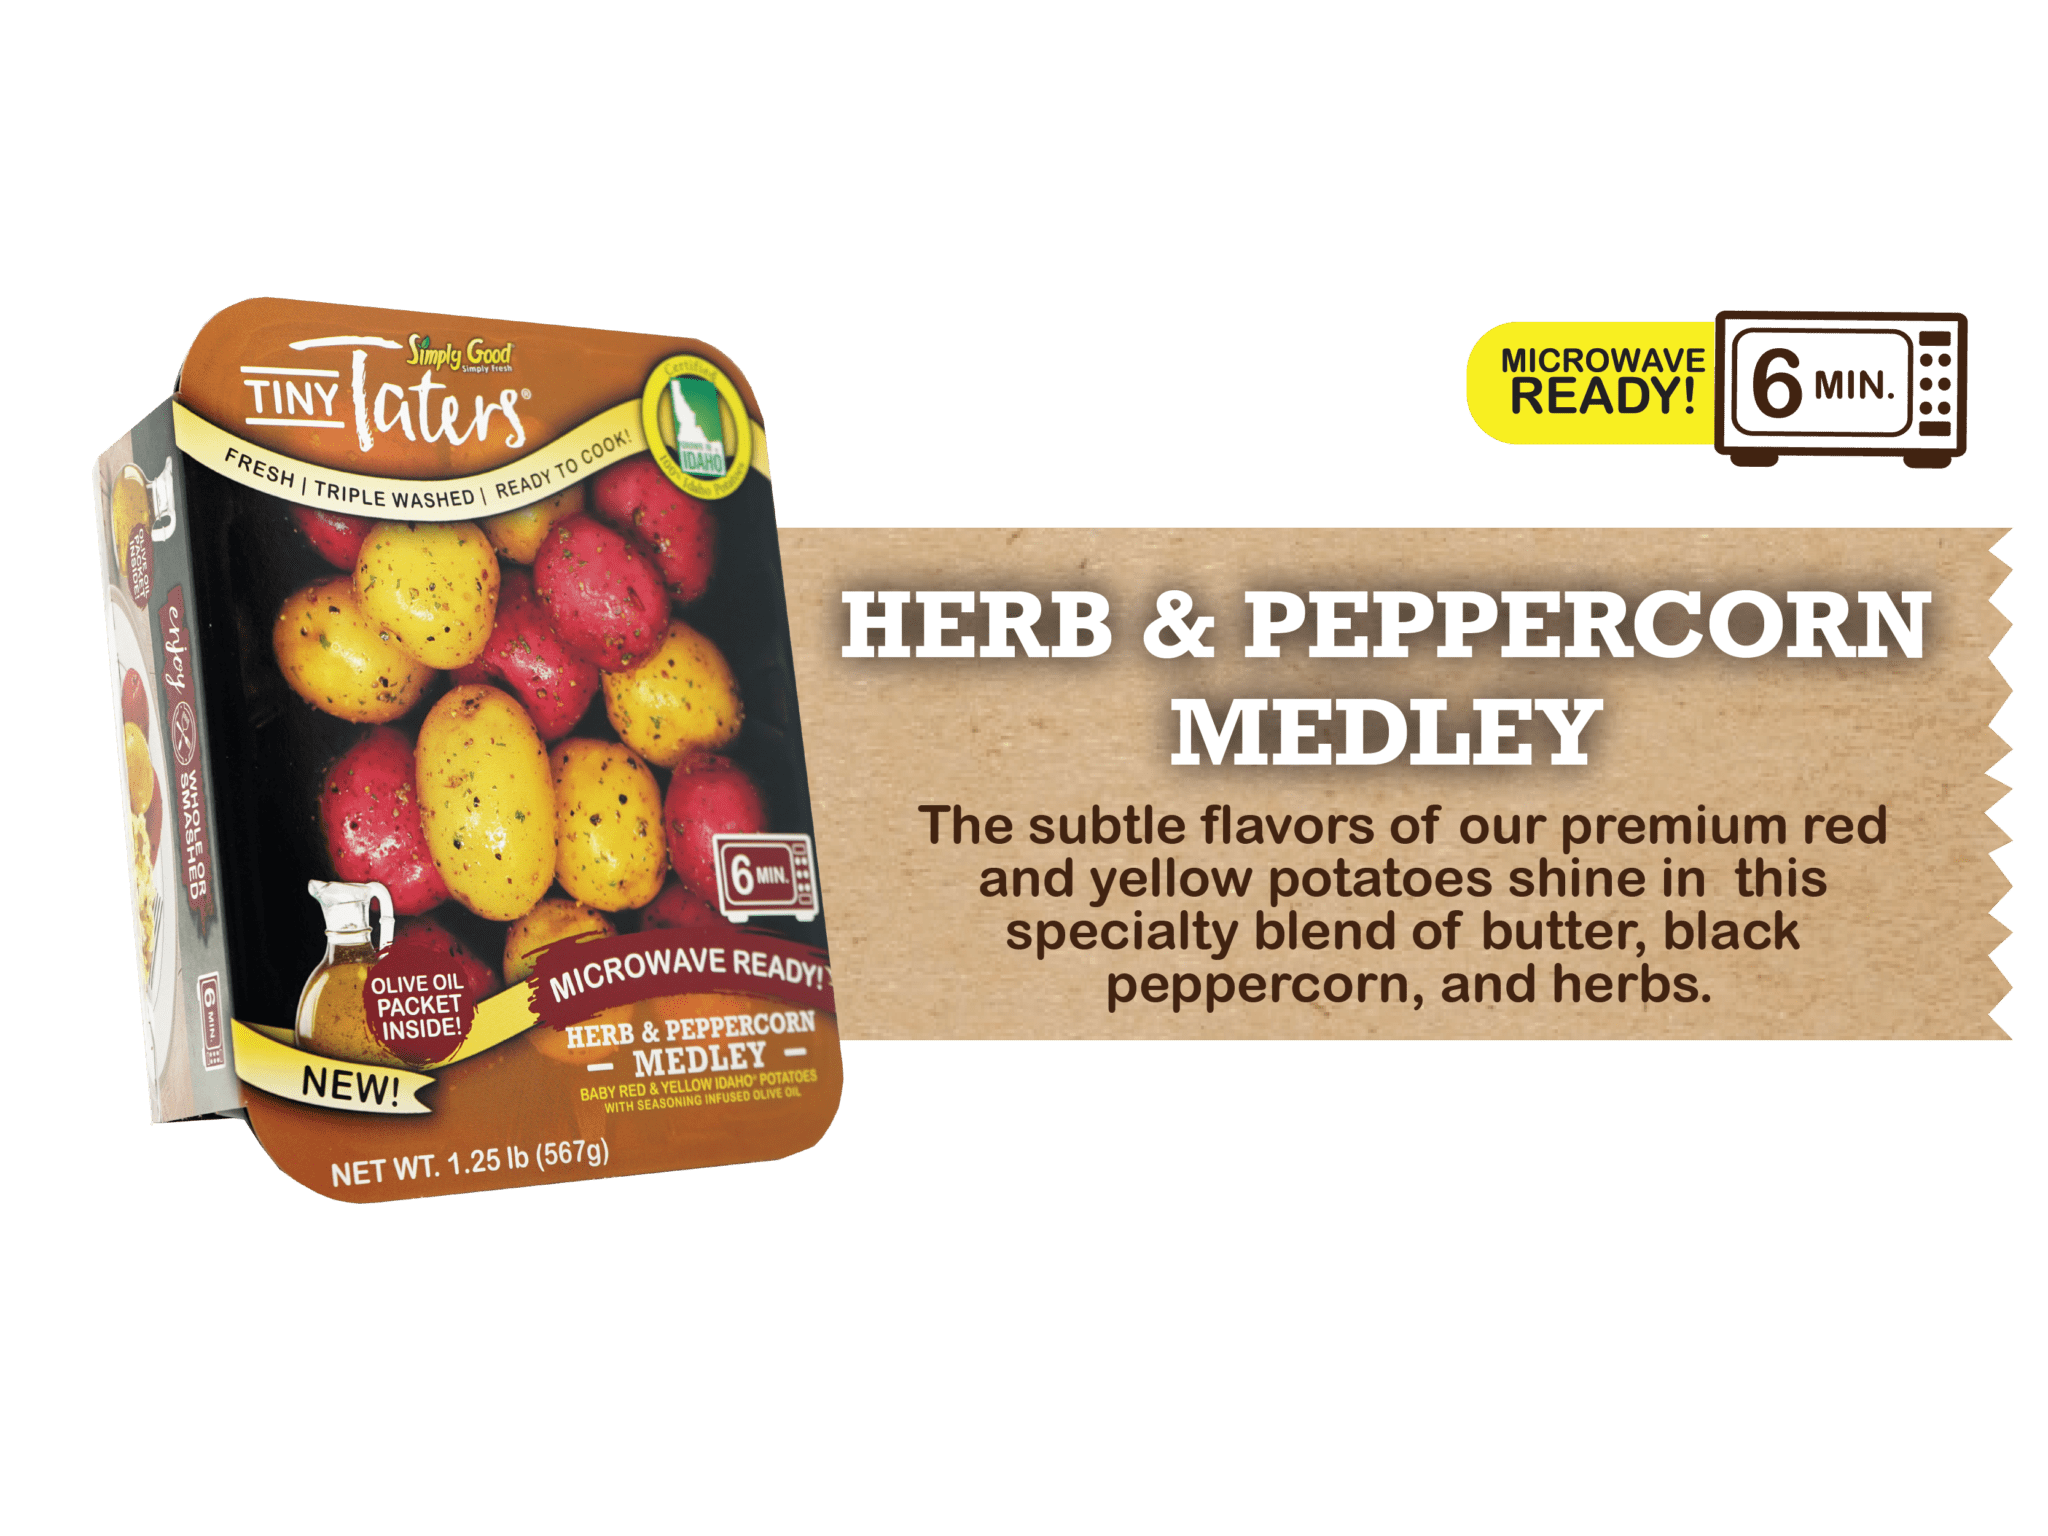 Eagle Eye Produce Tiny Taters Herb and Peppercorn Medley